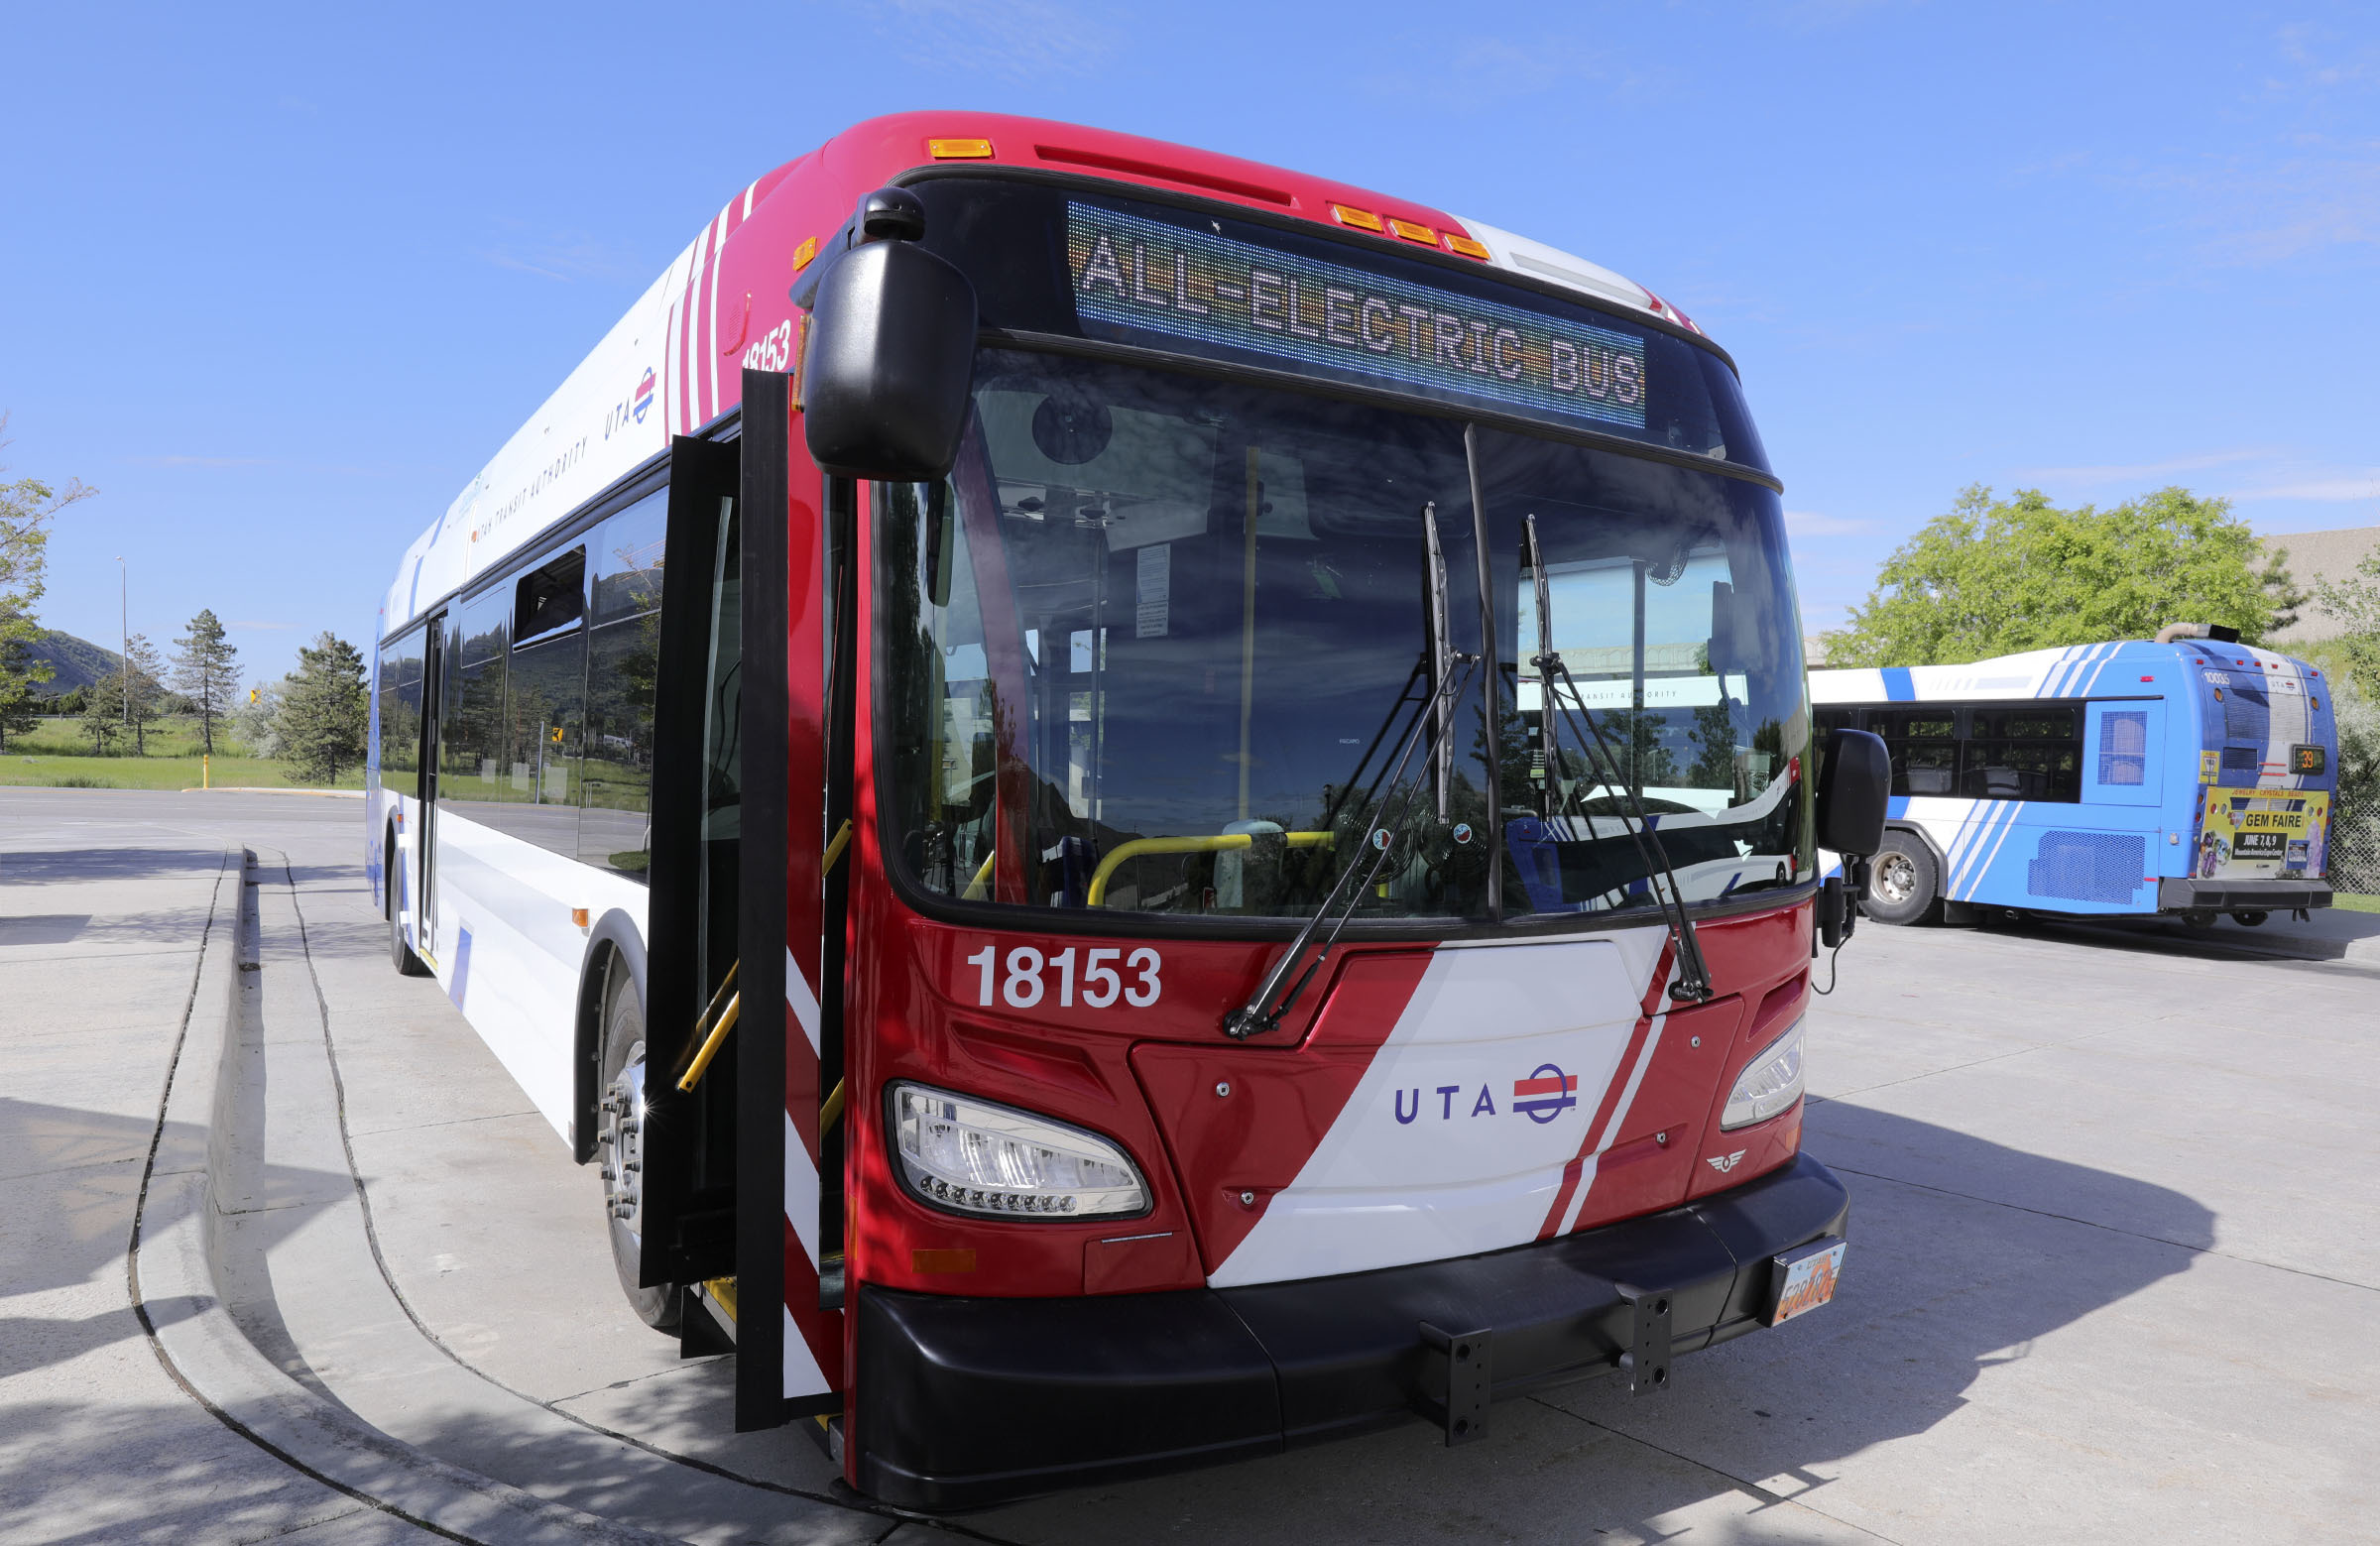 FILE - An electric bus that will go into service later this summer is pictured at the Utah Transit Authority Park & Ride in Millcreek on Friday, May 31, 2019.